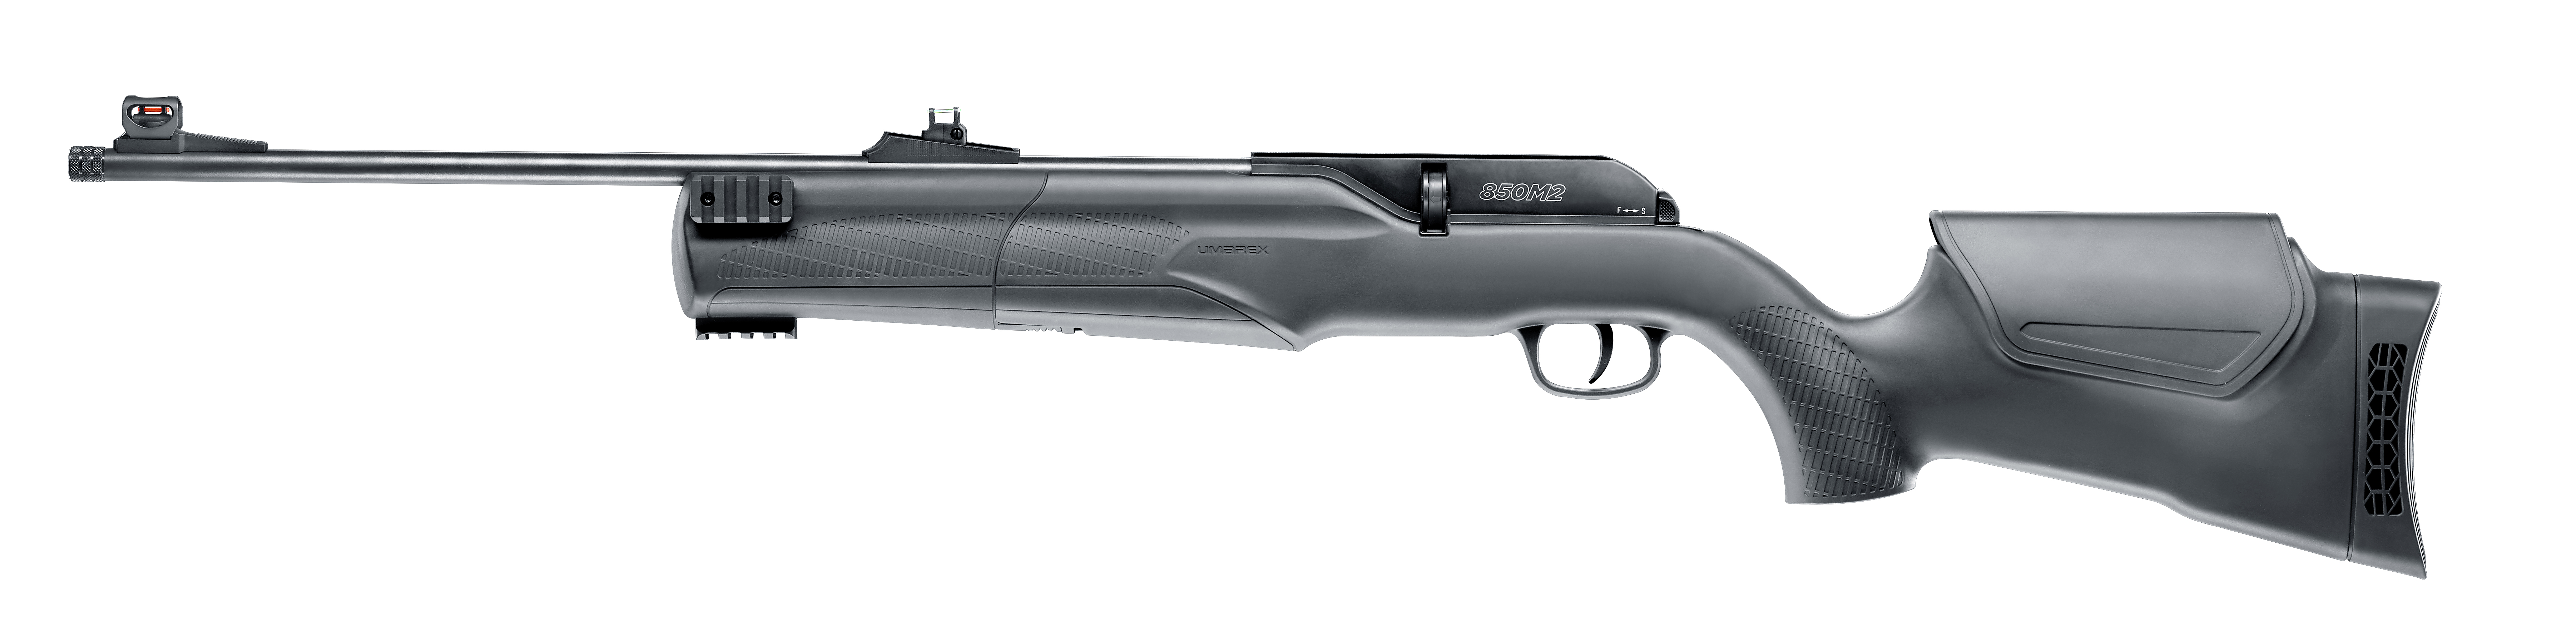 UMAREX CO2 Airgun 850 M2